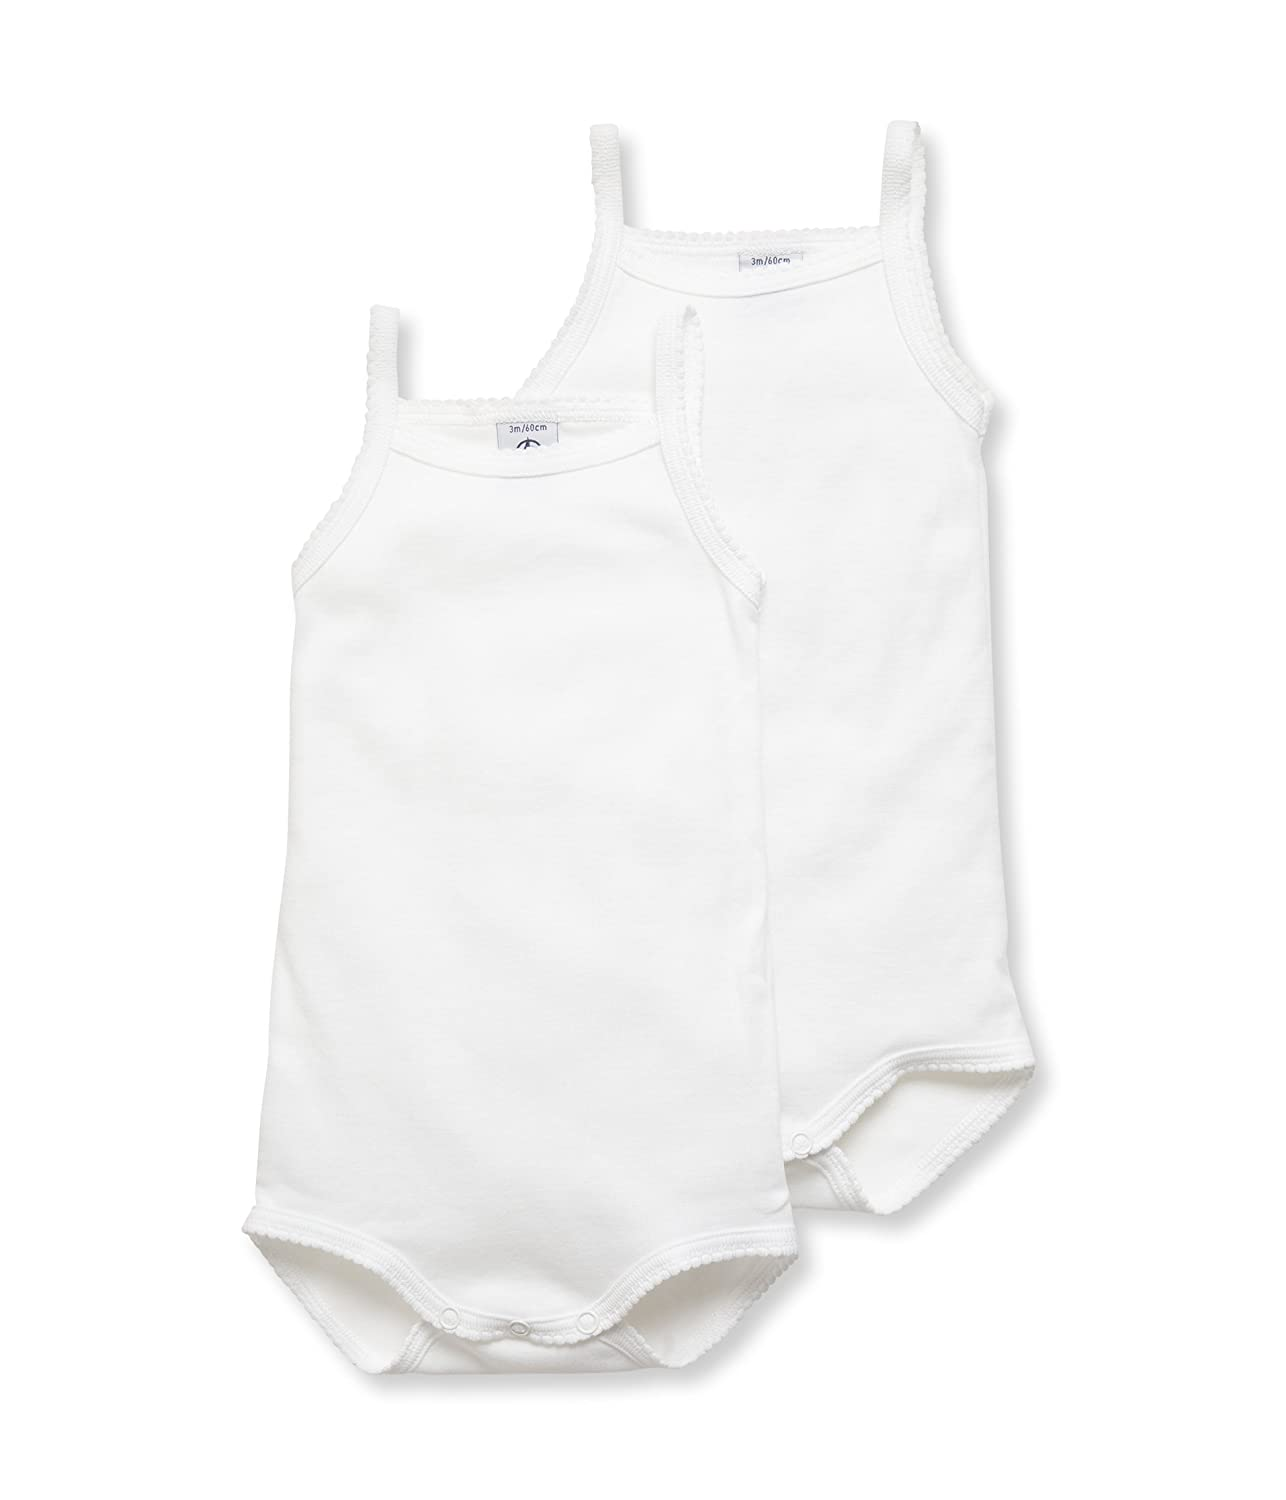 Petit Bateau Baby Girls Lot 2p Body Bret Sleeveless Bodysuit